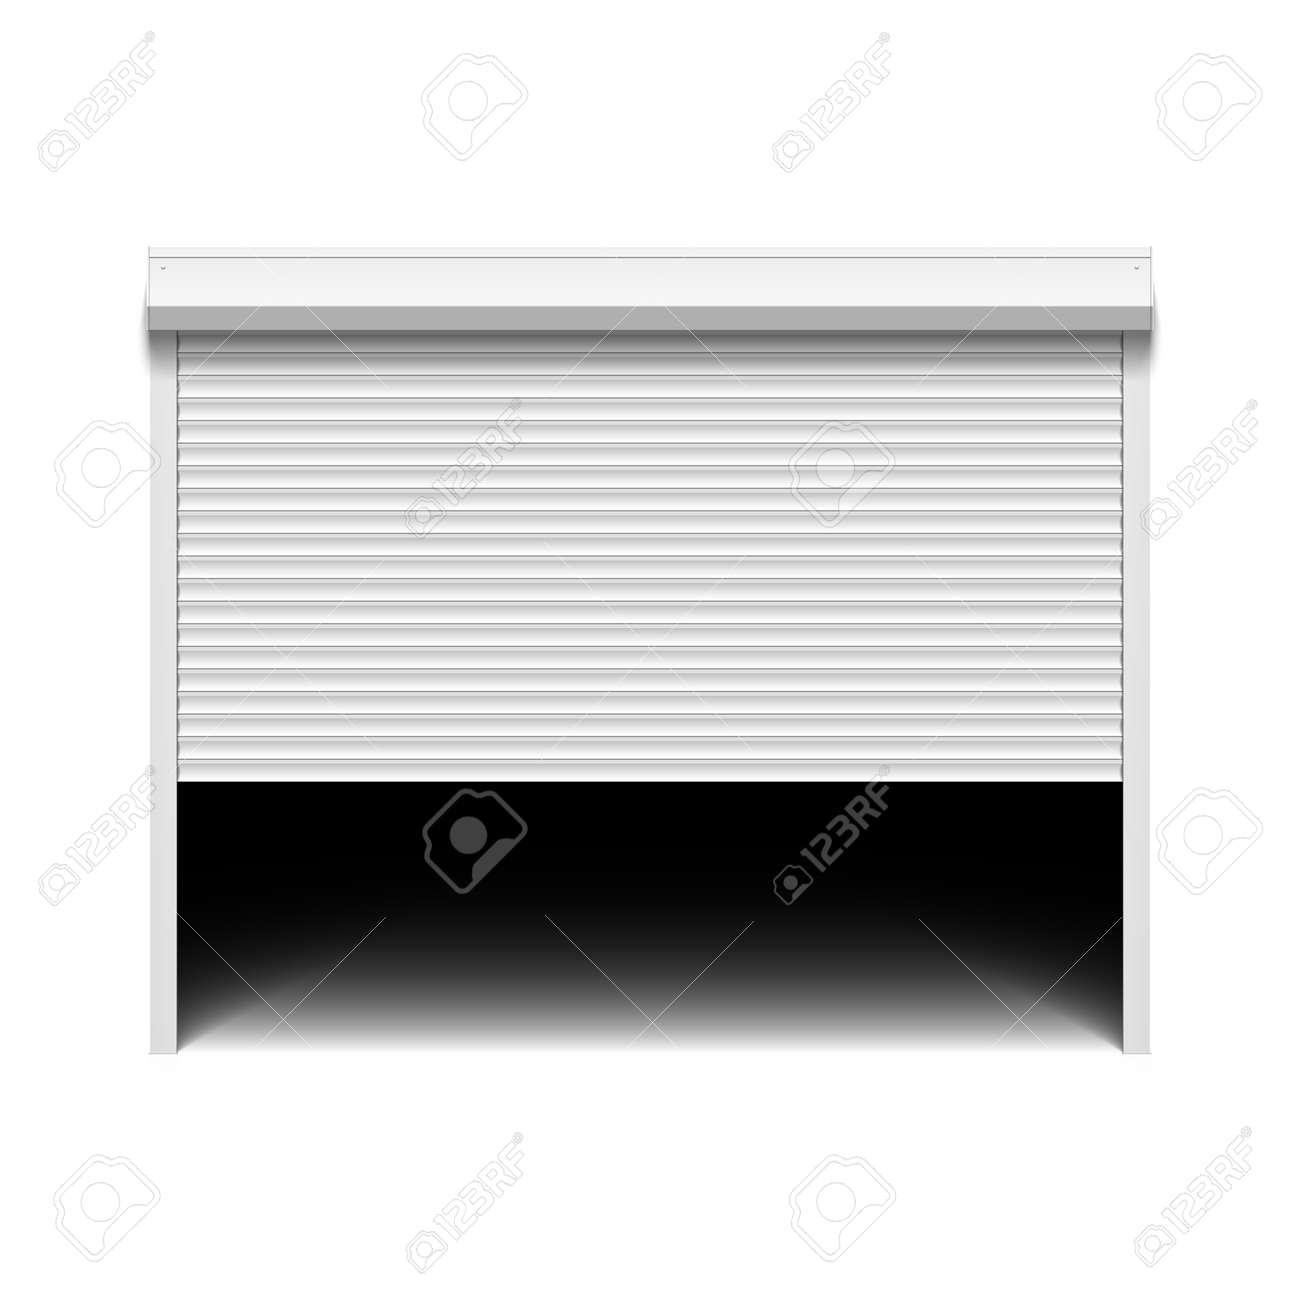 Garage doors clipart - Roller Shutter Garage Door Stock Vector 23123961